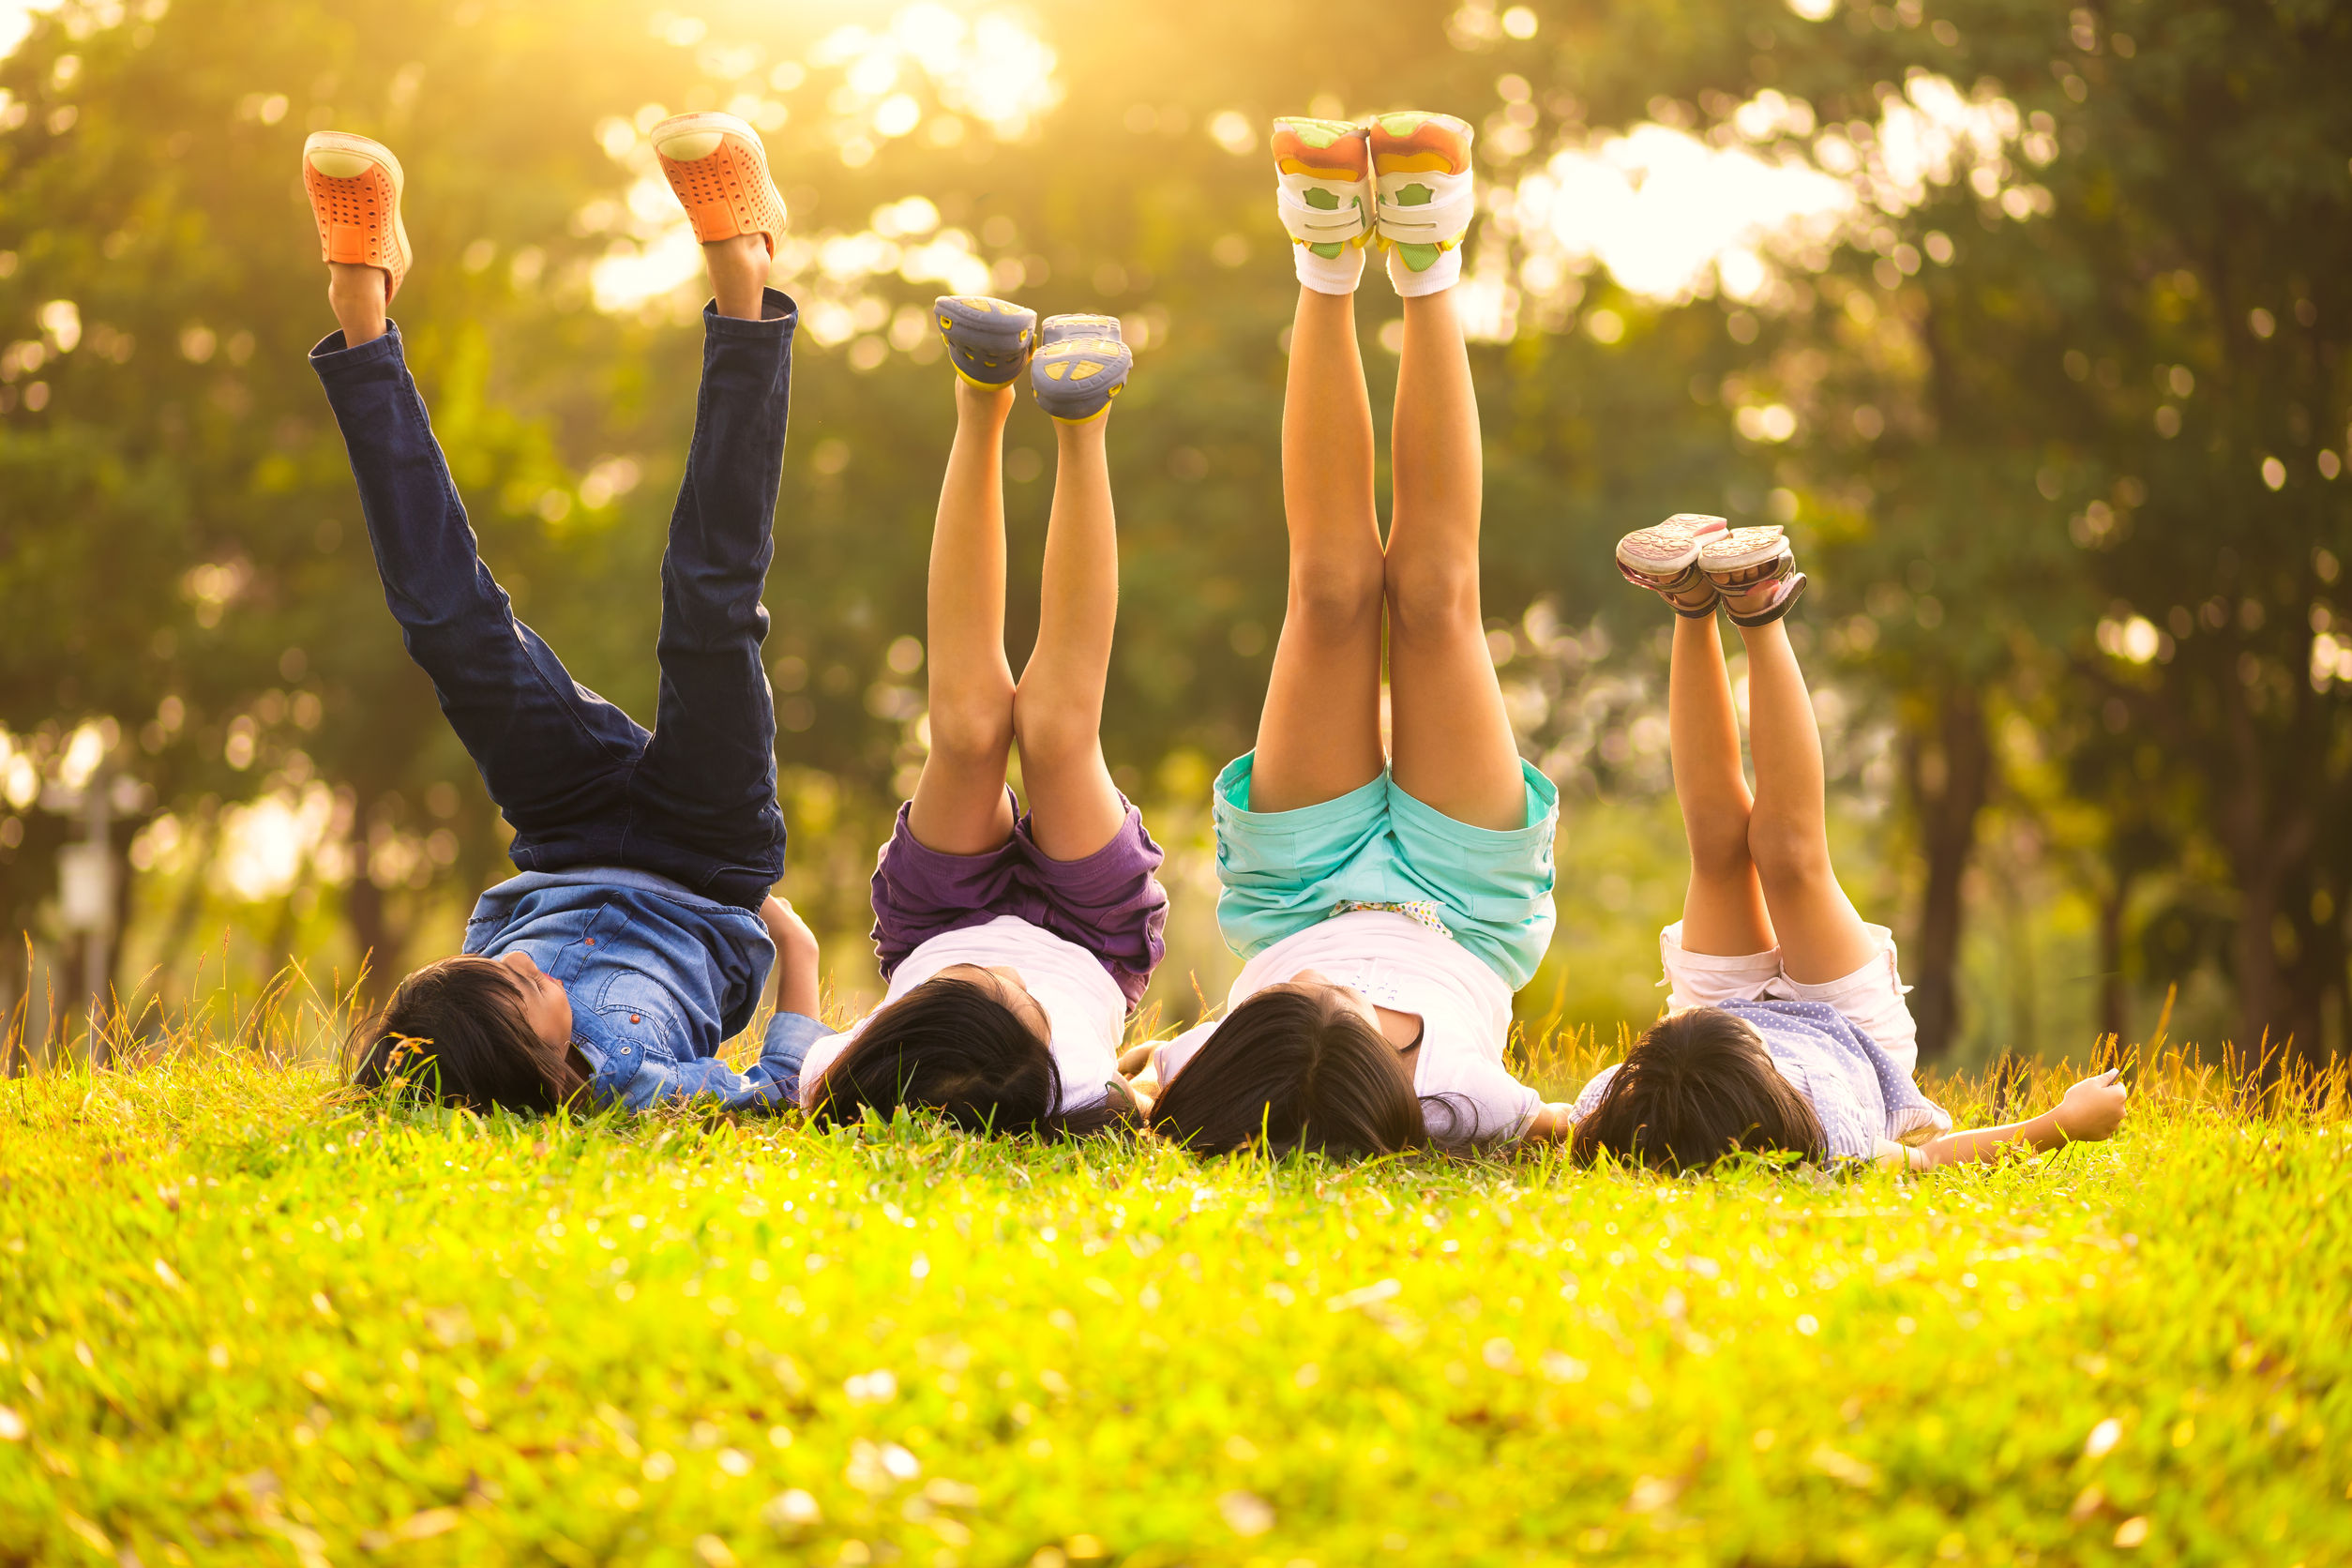 39436758 - group of happy children lying on green grass outdoors in spring park